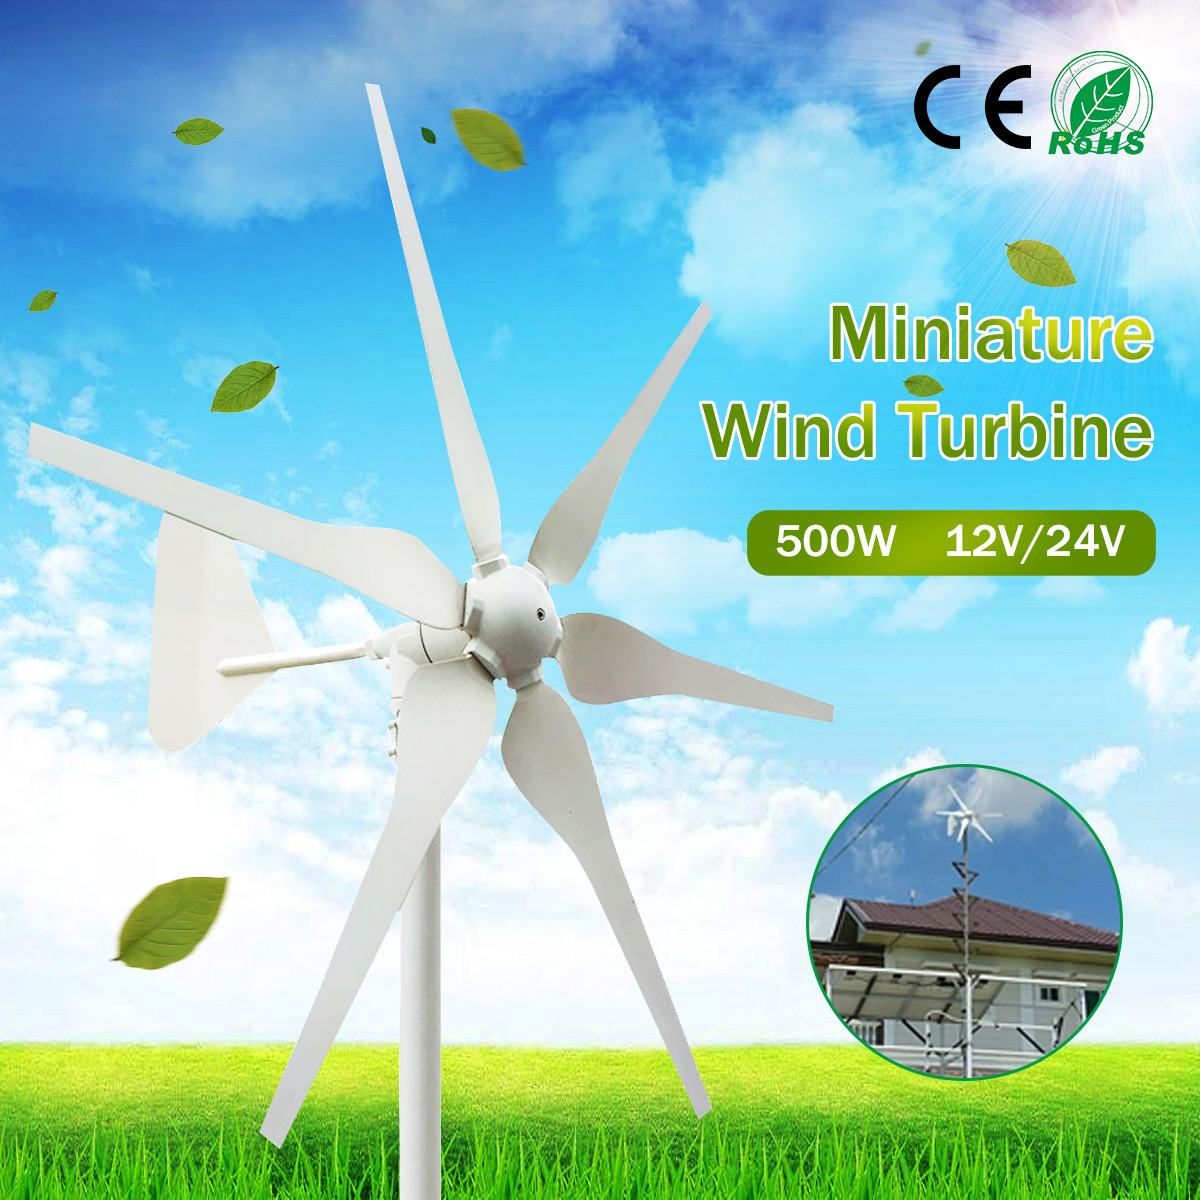 Becornce 500W 12V/24V AC Generator Wind Turbines Generator Miniature Wind Turbines With Controller for Residential Home Use